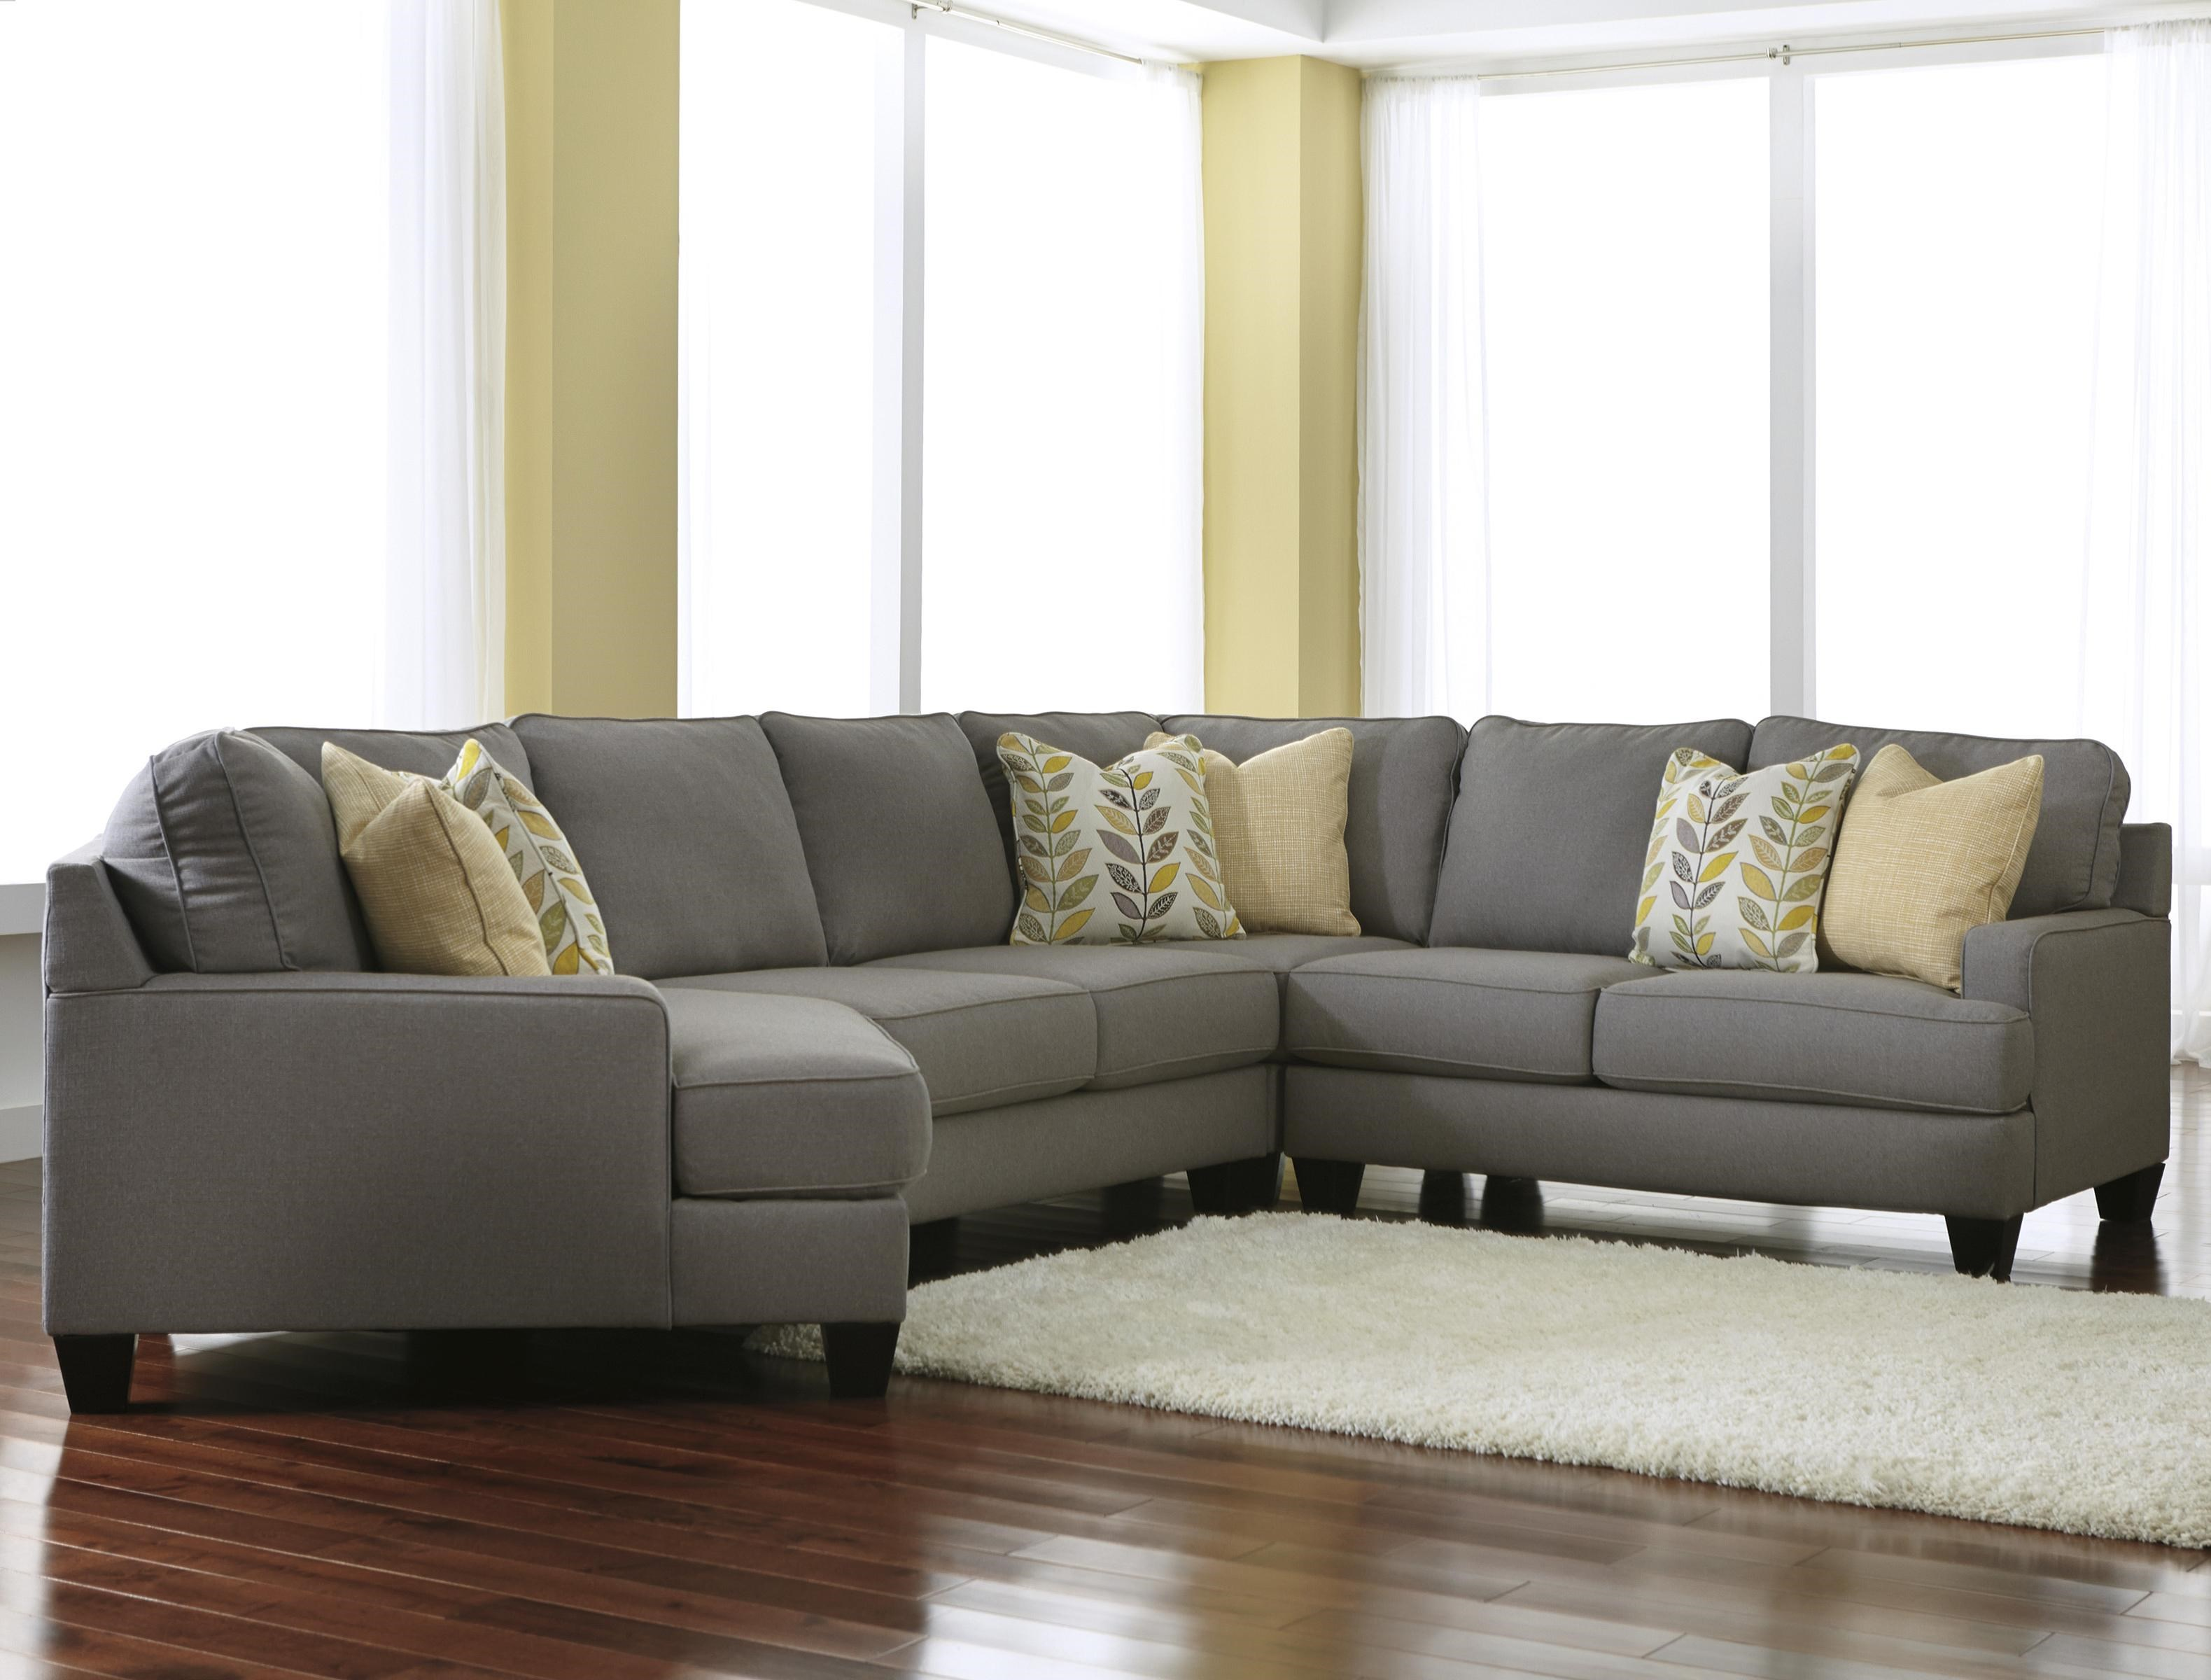 Signature Design by Ashley Chamberly - Alloy Modern 4-Piece Sectional Sofa with Left Cuddler  sc 1 st  Value City Furniture : sectional couch with cuddler - Sectionals, Sofas & Couches